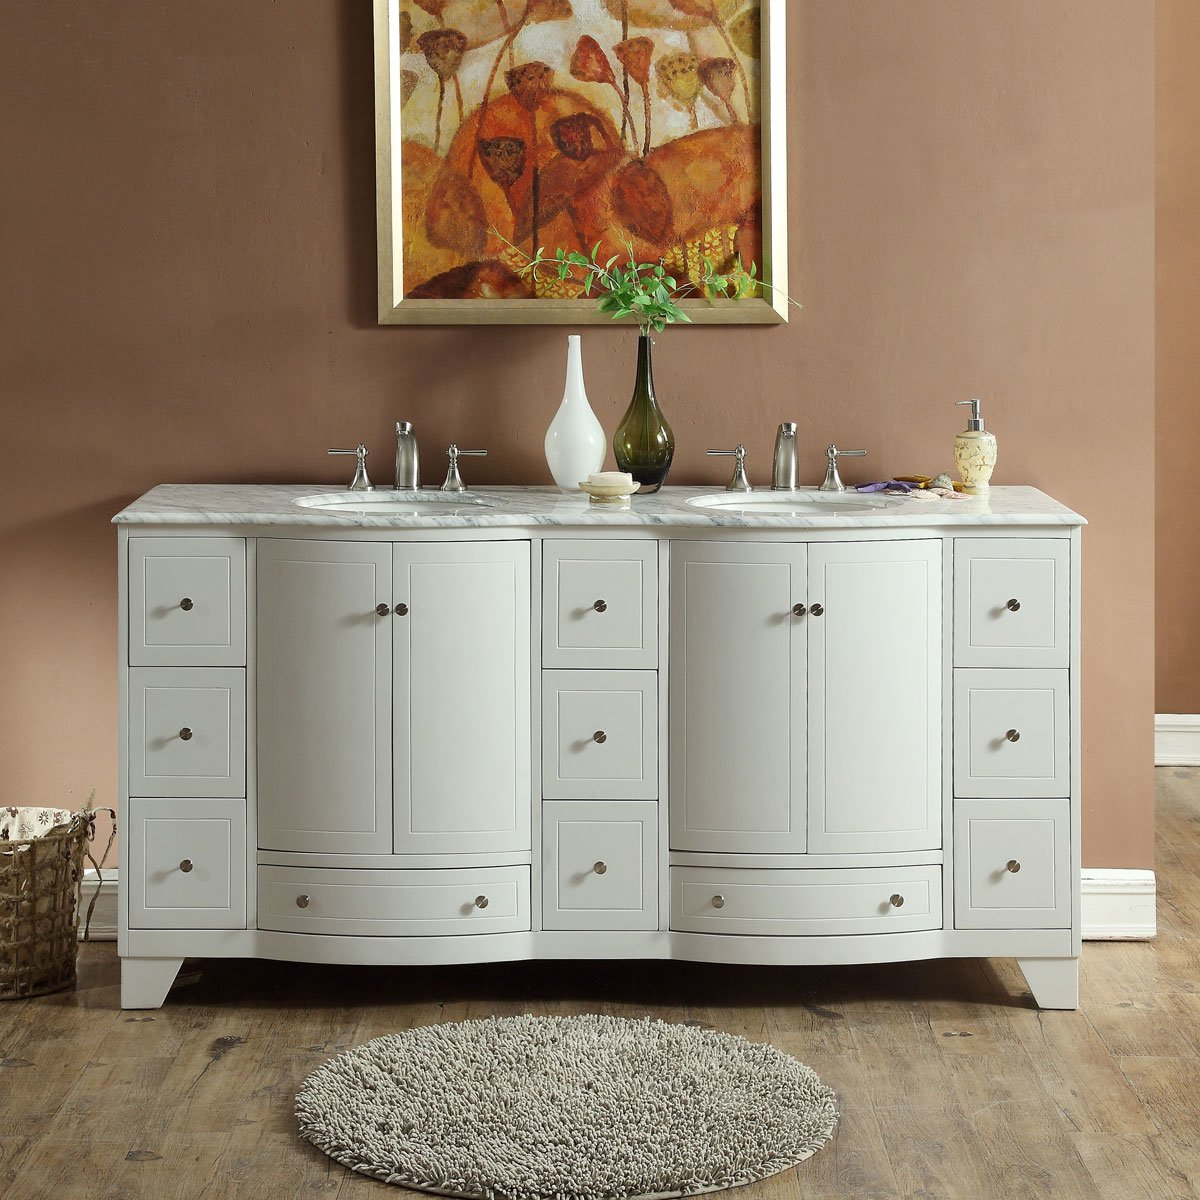 72 Inch Double Sink Contemporary Bathroom Vanity In White Finish Marble Top